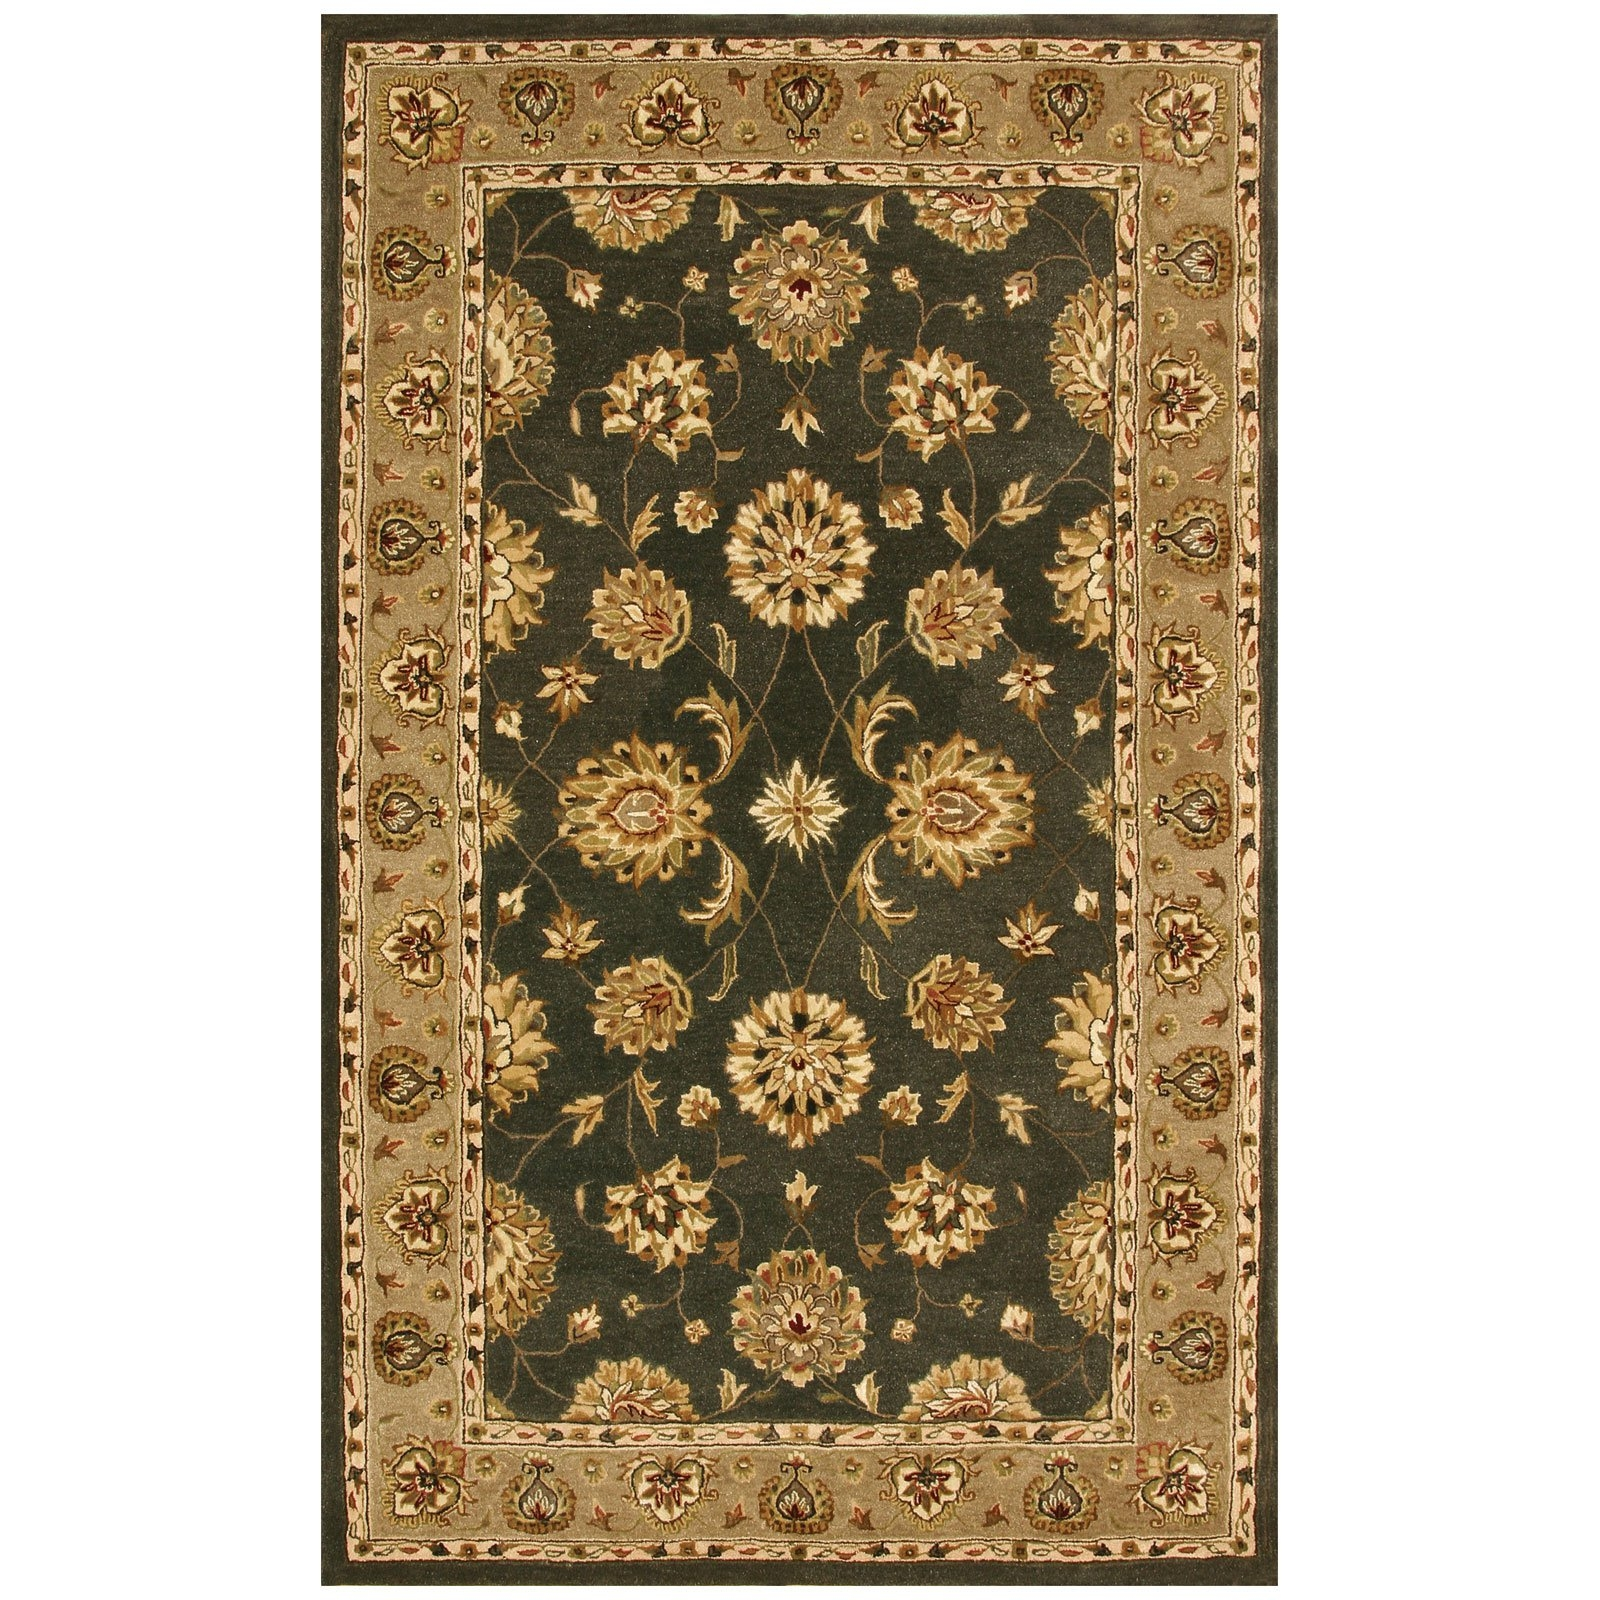 Green Persian Rugs Roselawnlutheran Regarding Green Persian Rugs (Image 12 of 15)